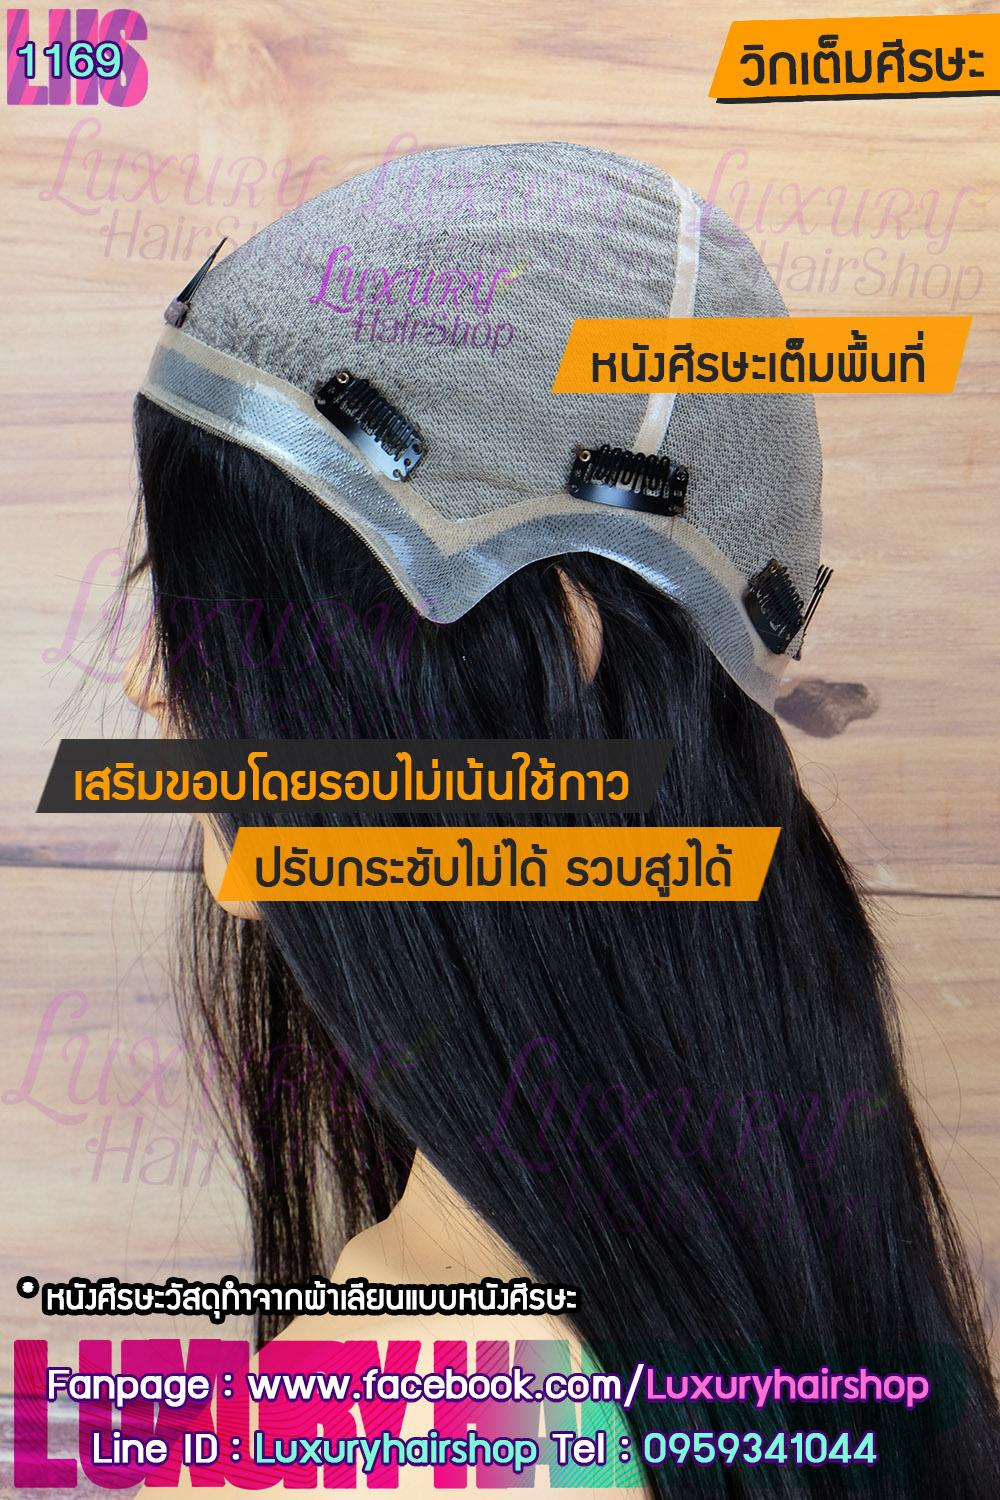 Order's Review คุณ ศิวรุต